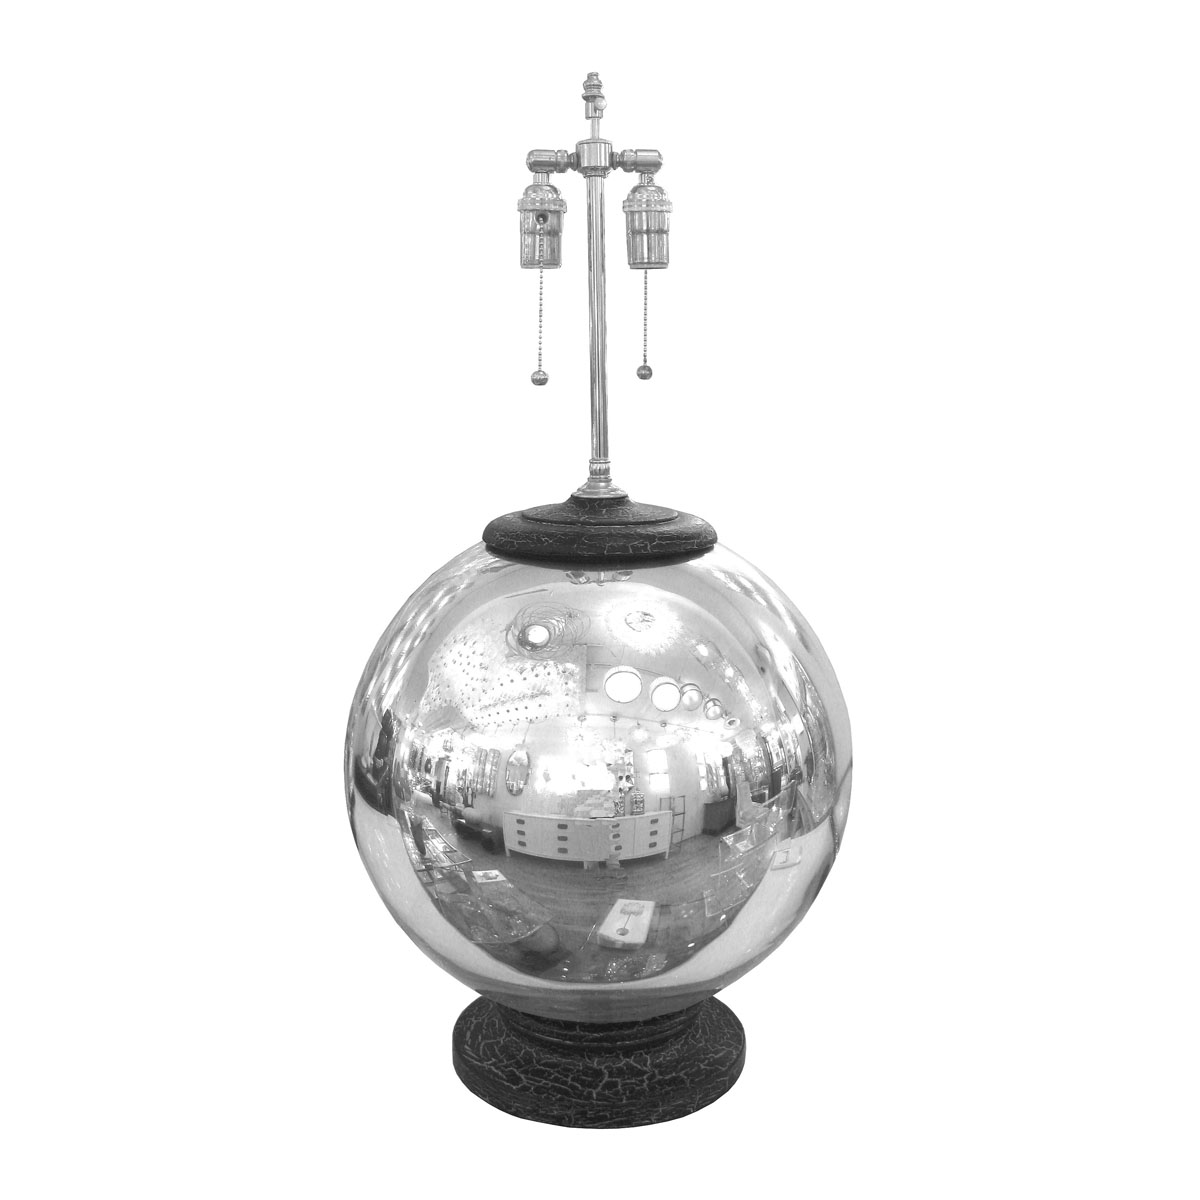 Single Spherical Mercury Glass Lamp With Distressed Black Base And Cap Lamps John Salibello